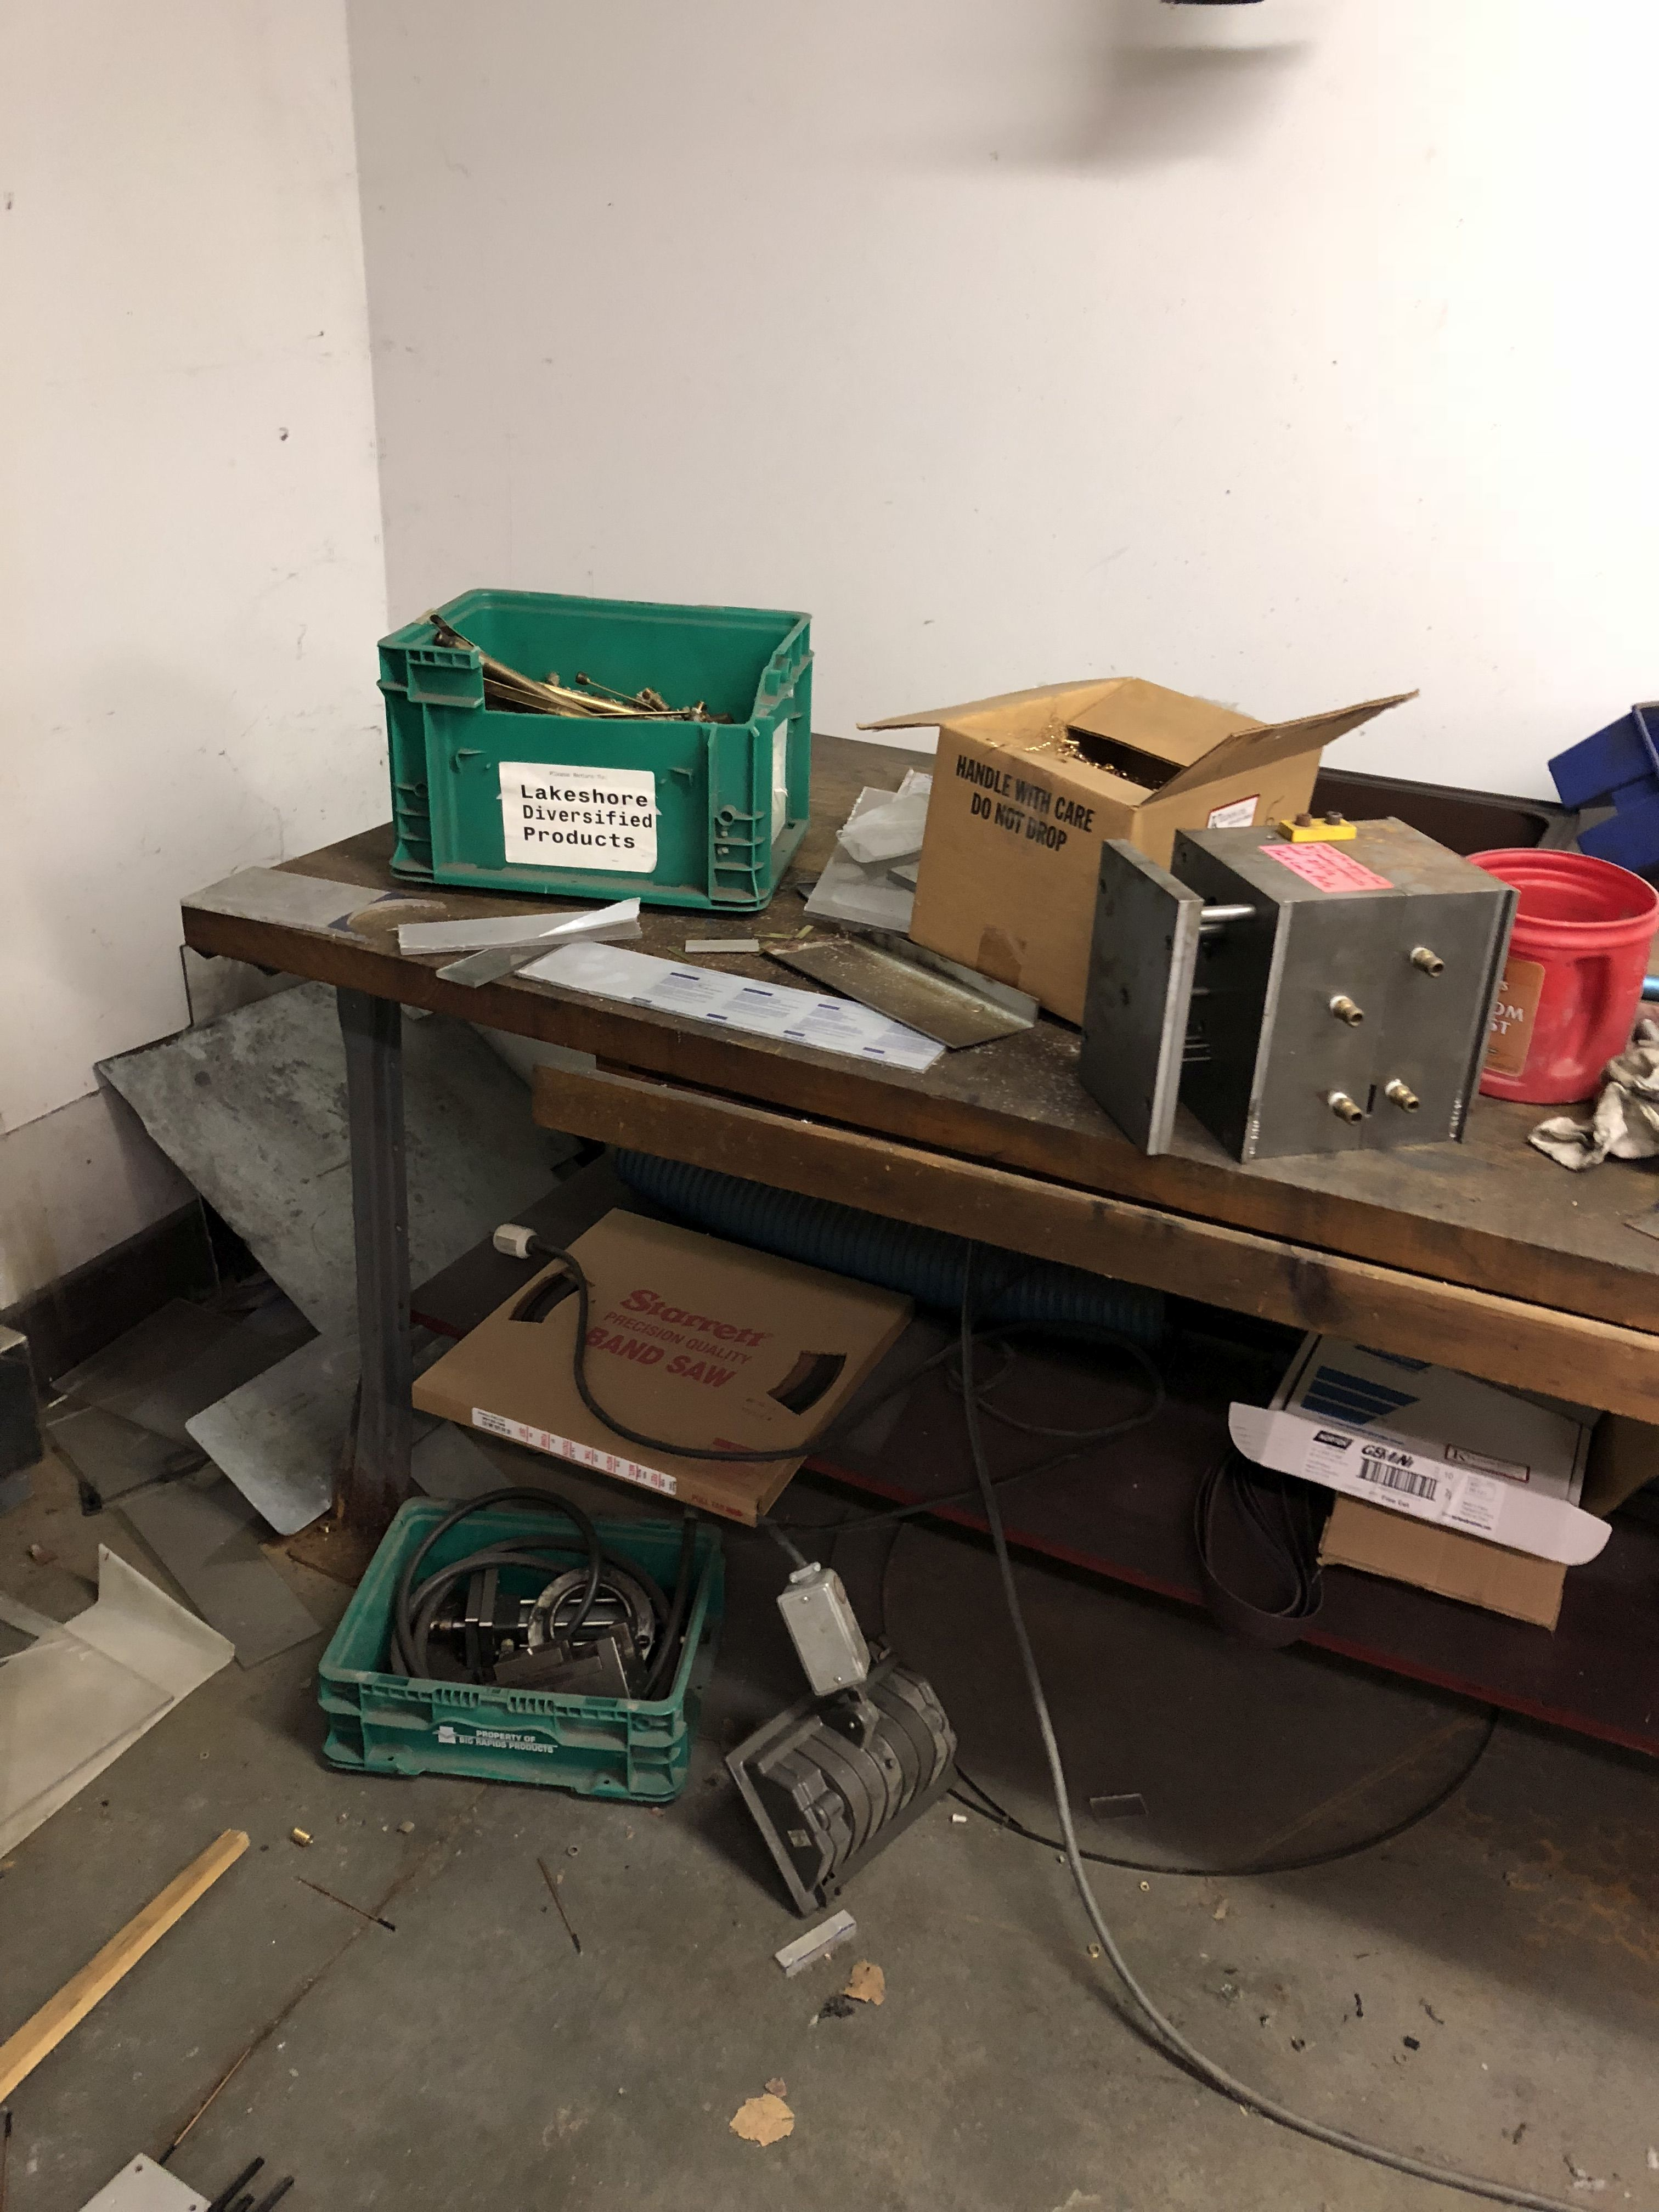 Lot 50 - METAL WORK BENCH WITH WOOD TOP, 6' LONG x 36'' WIDE x 34'' TALL [CONTENTS ON BENCH NOT INCLUDED] [